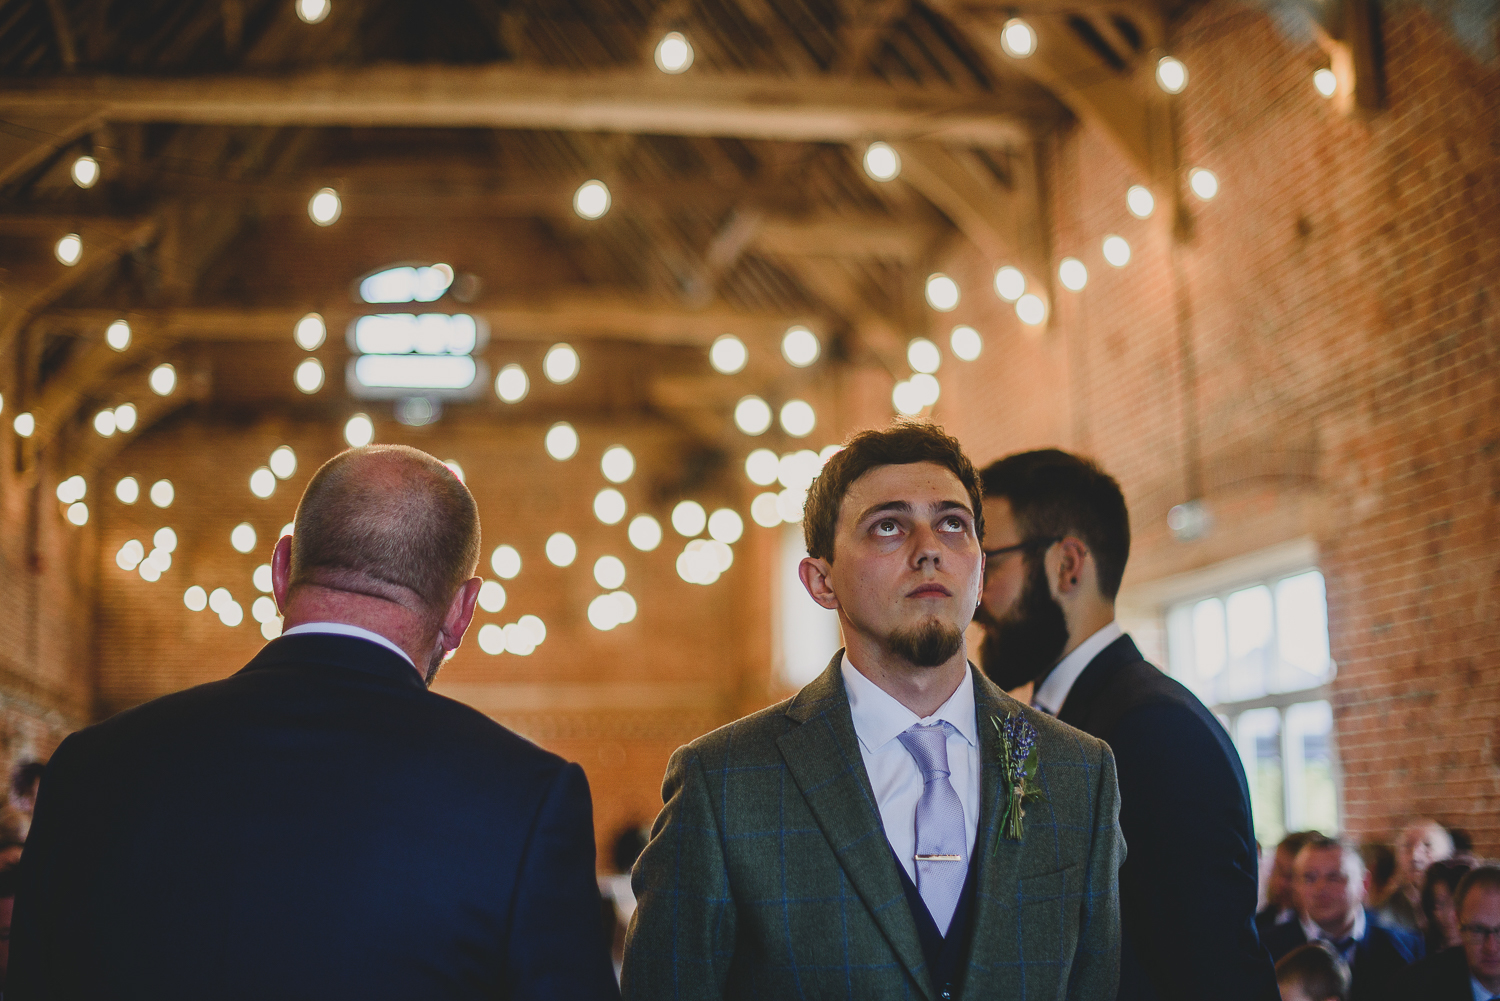 groom waiting for bride during ceremony